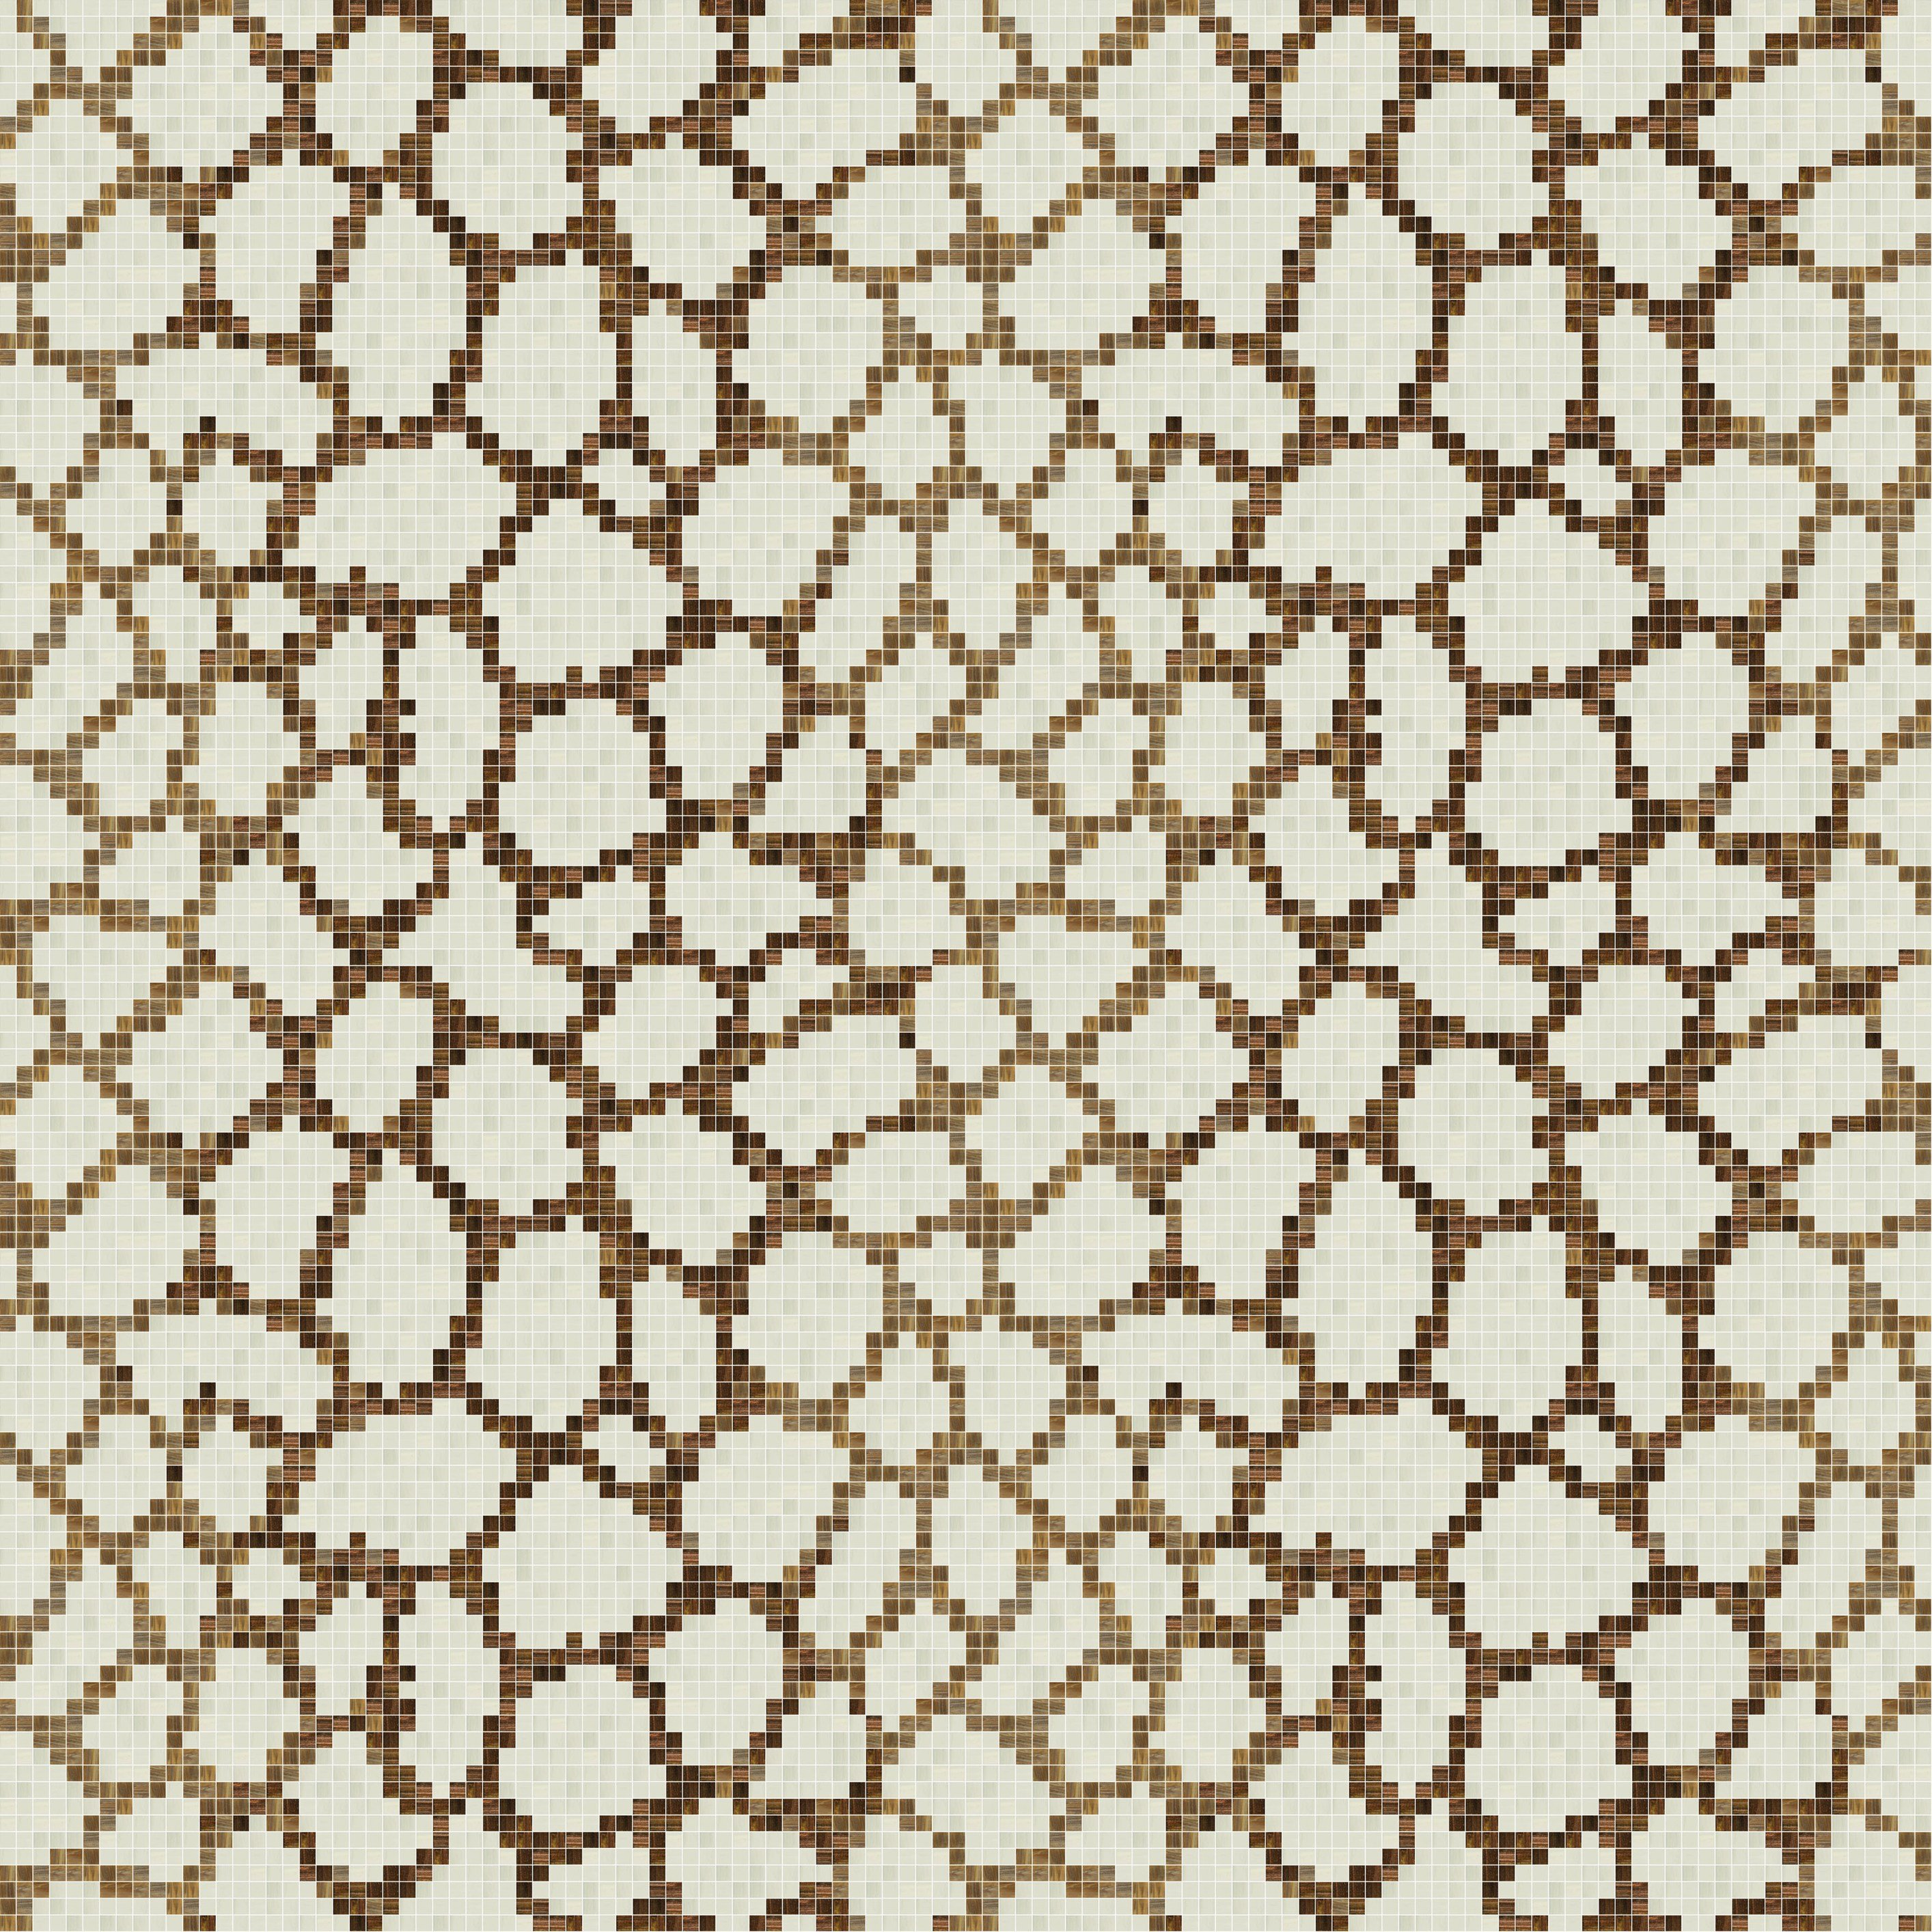 Glass Mosaic Wallpaper 1x1 By Trend Group